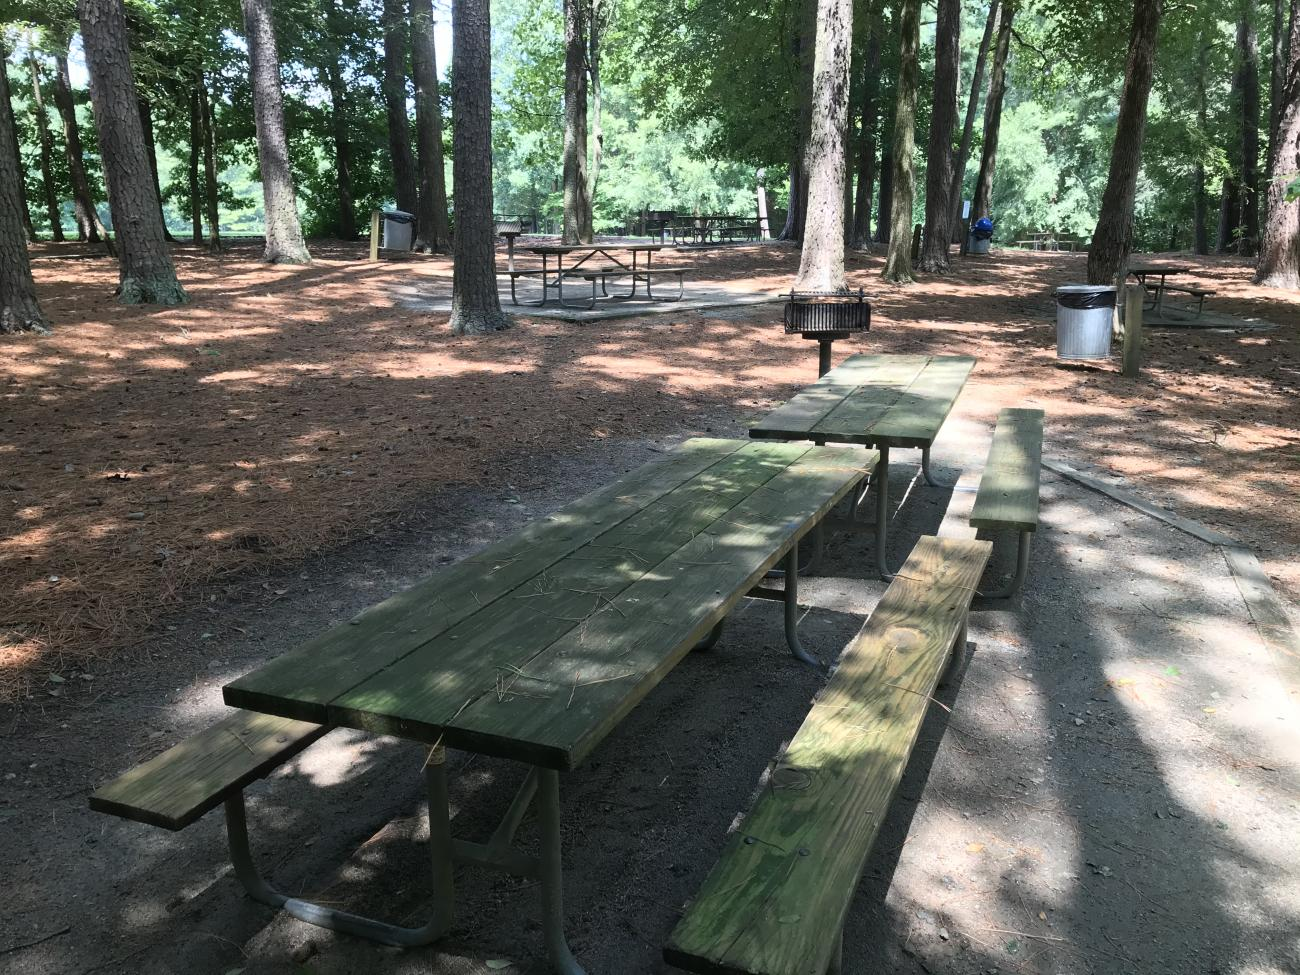 Picnic table with grill in shaded picnic area